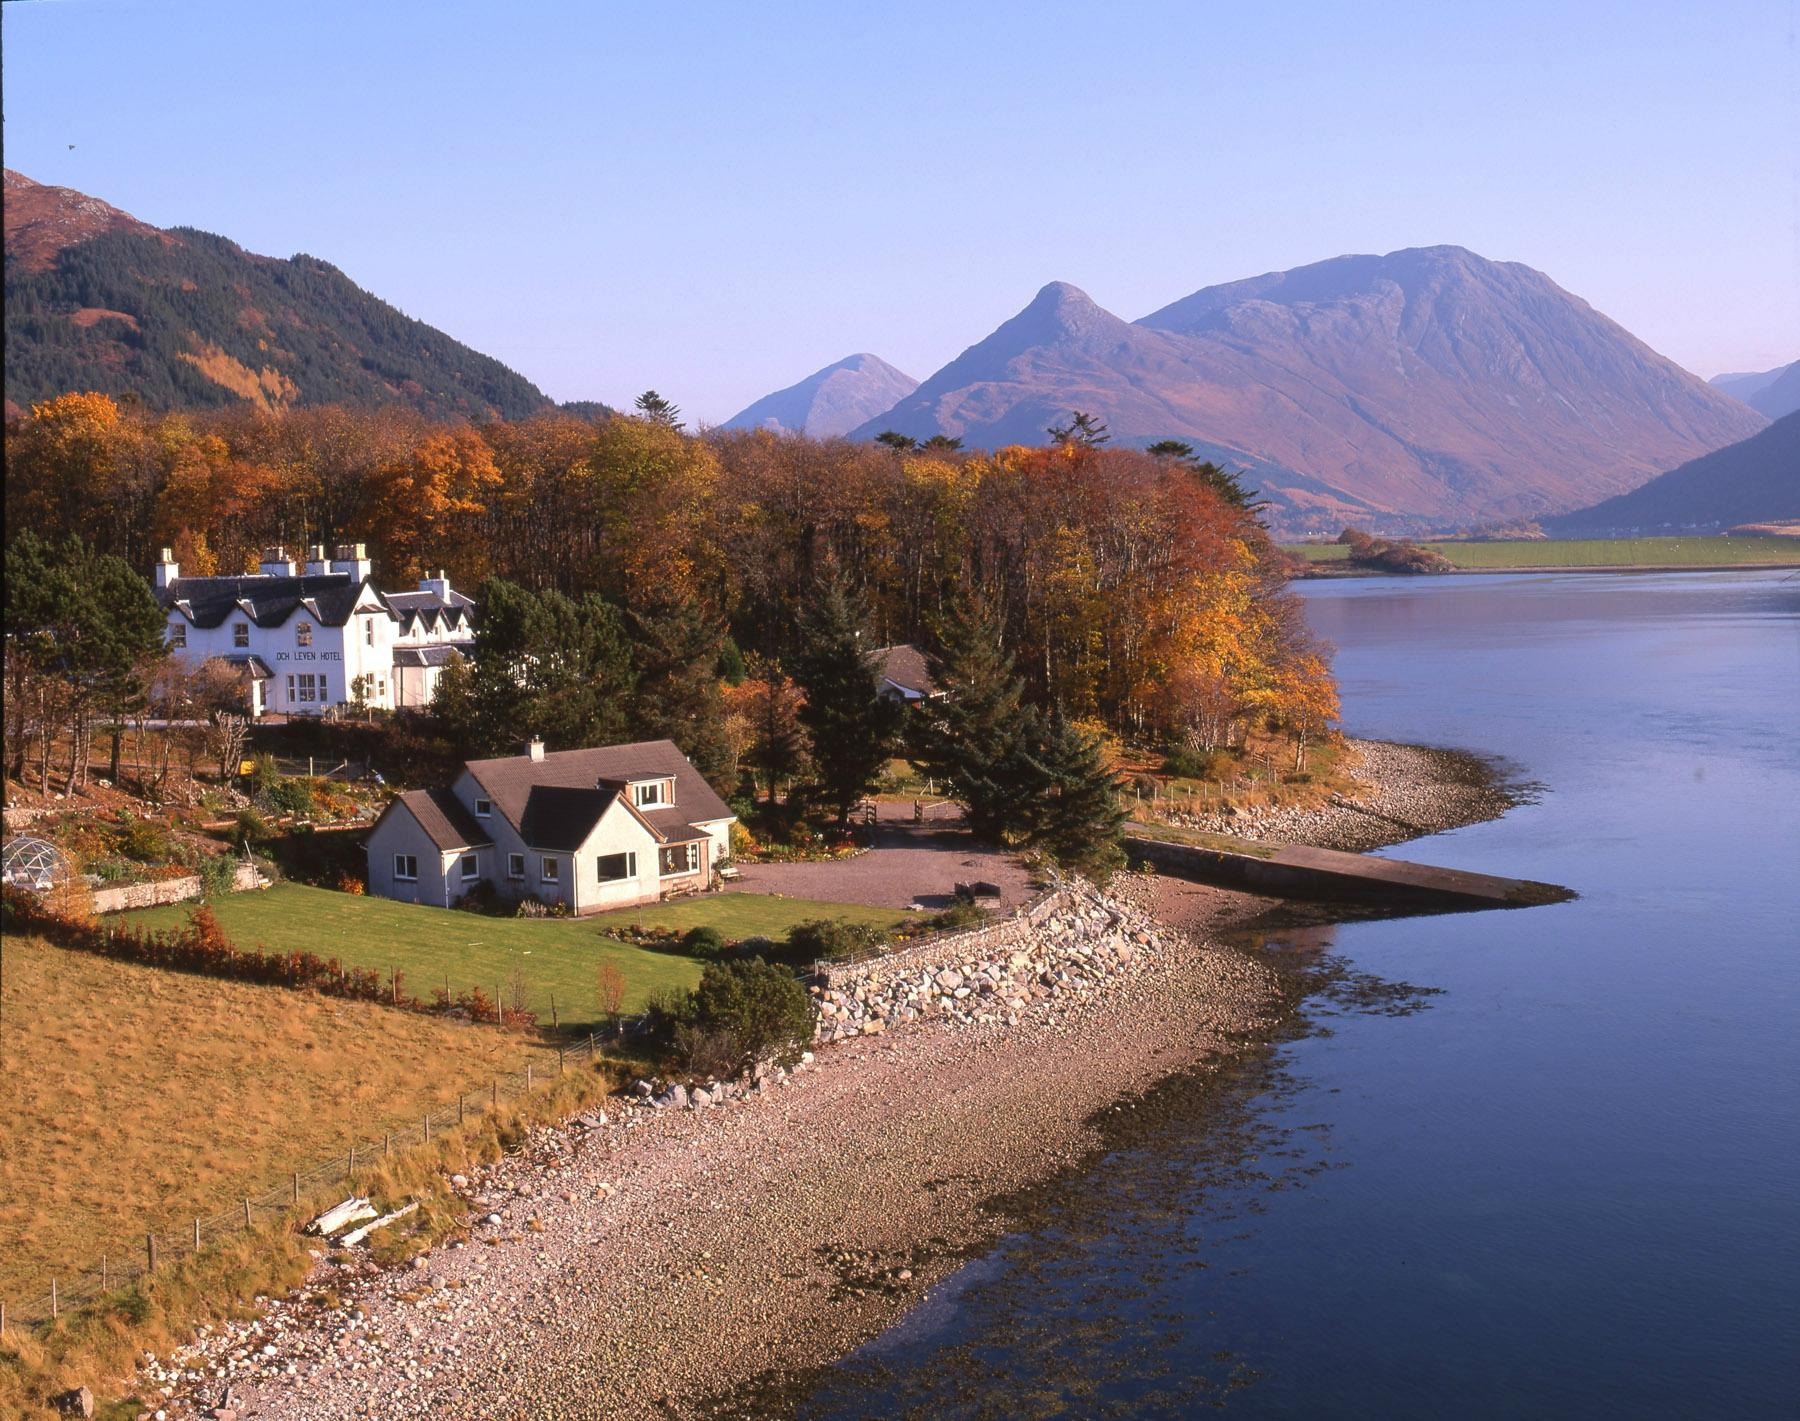 The Loch Leven Hotel